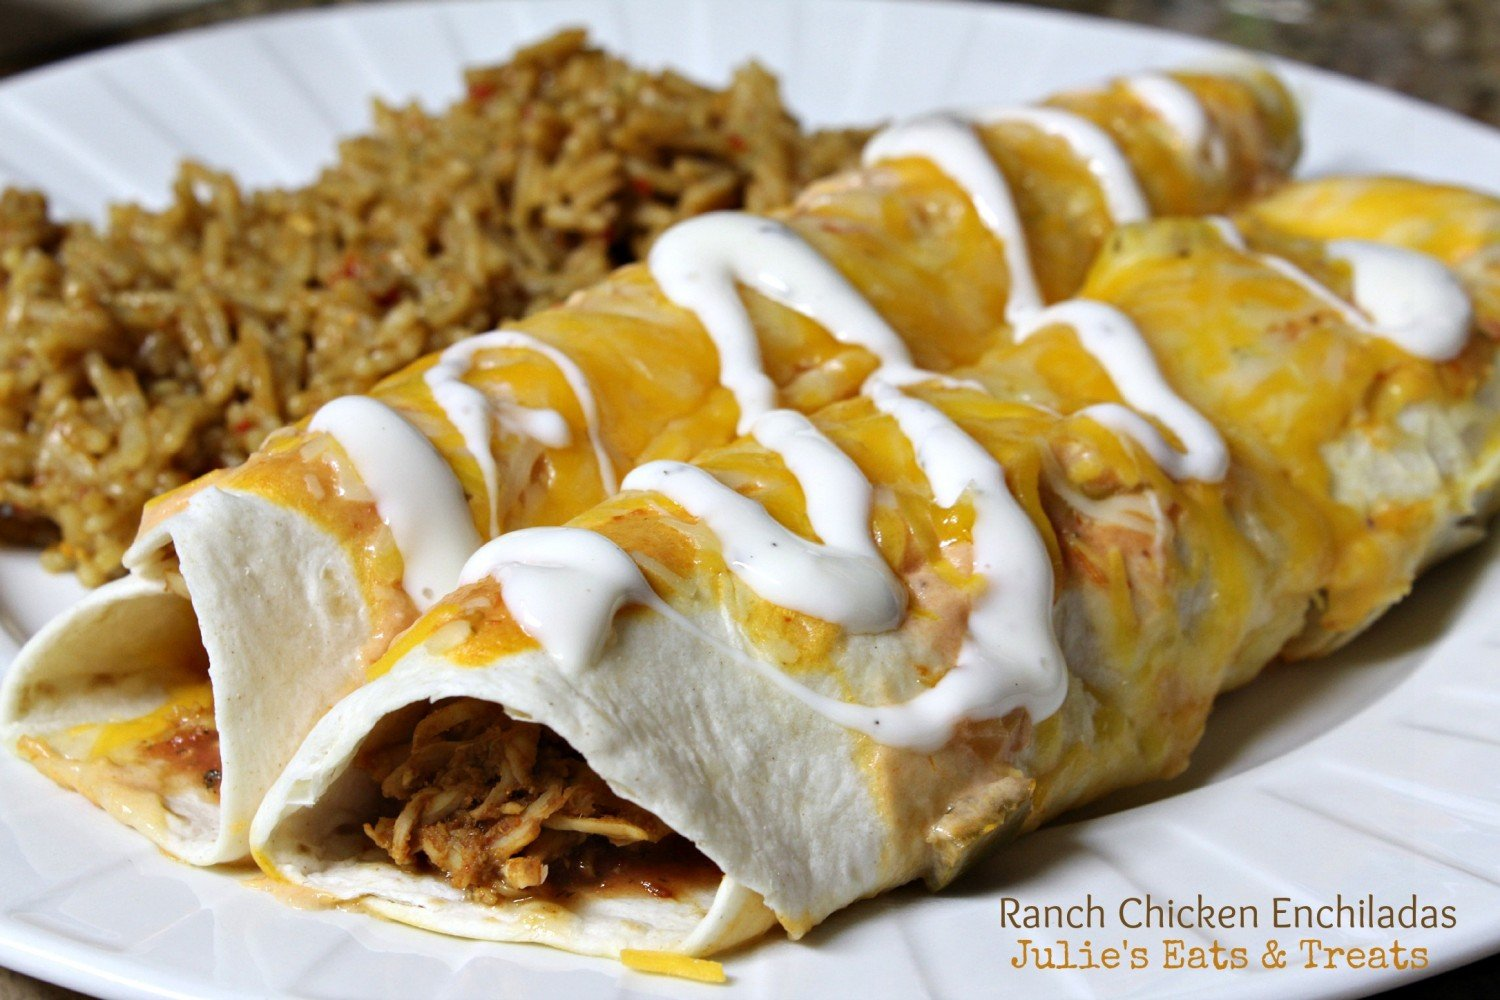 Julie's Eats & Treats ~ Ranch Chicken Enchiladas ~ Enchiladas with a twist!